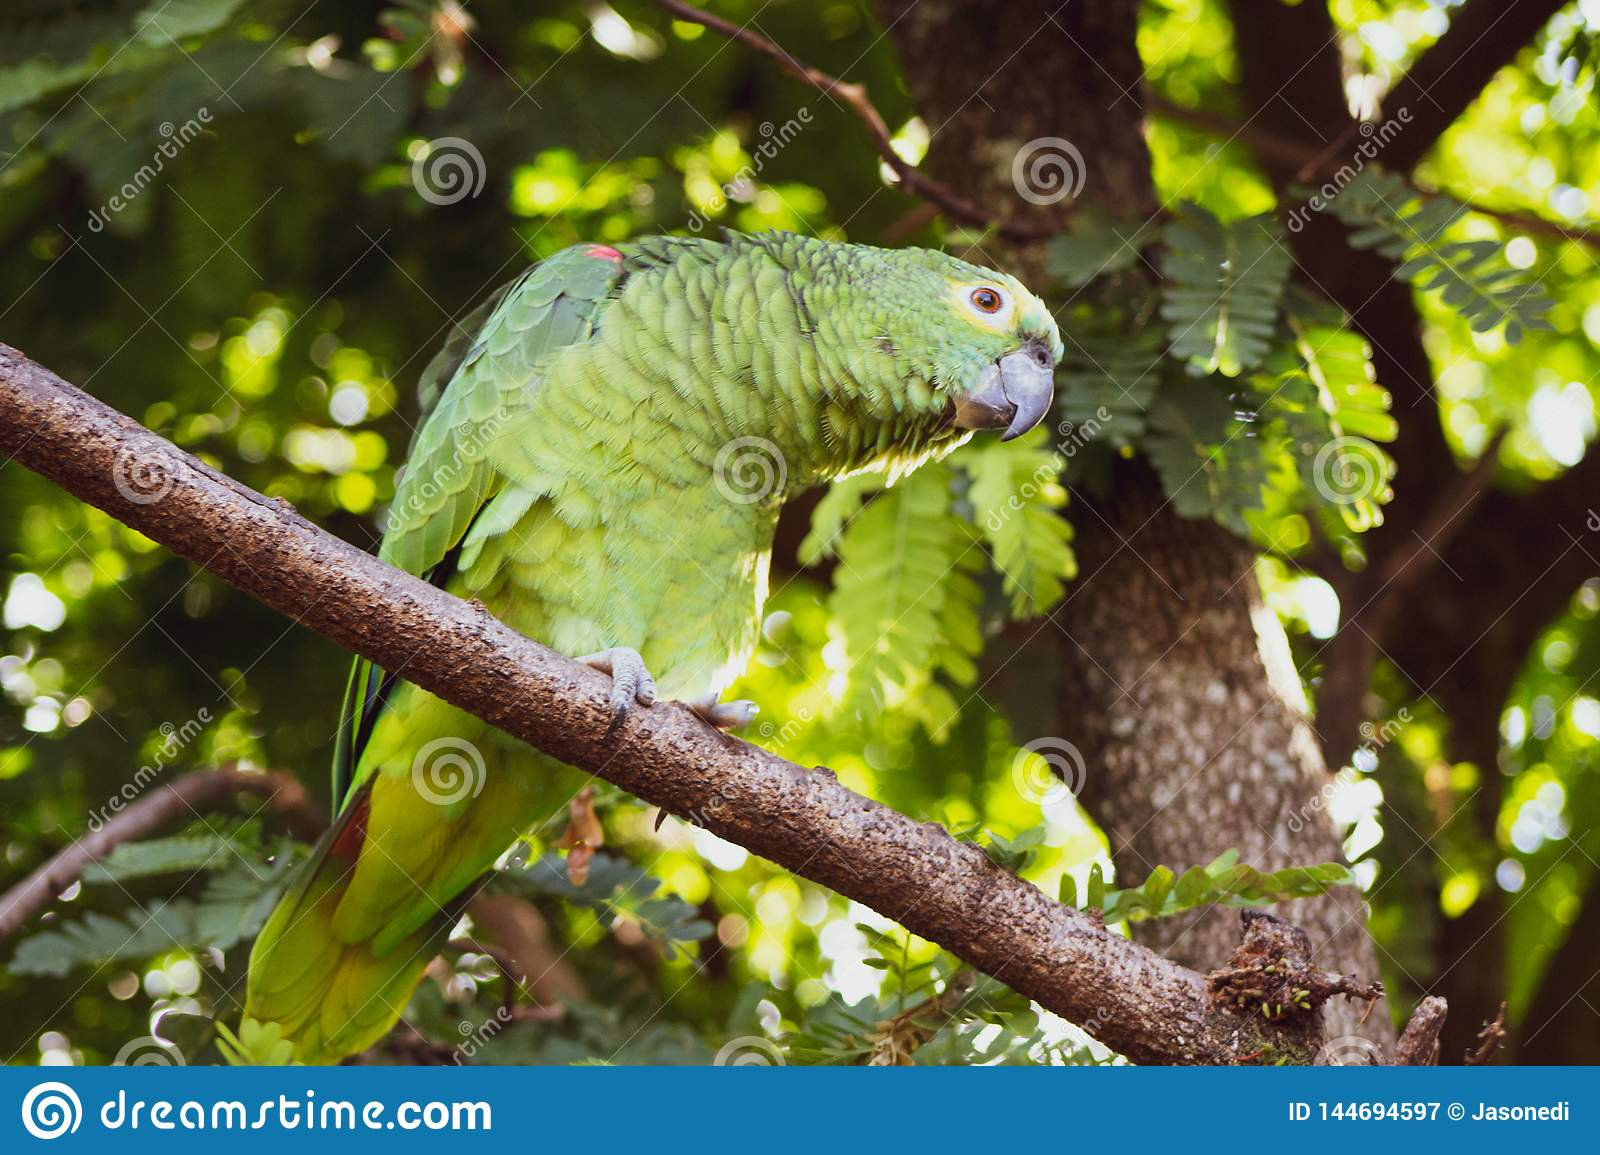 Green parrot with light eyes on lime tree